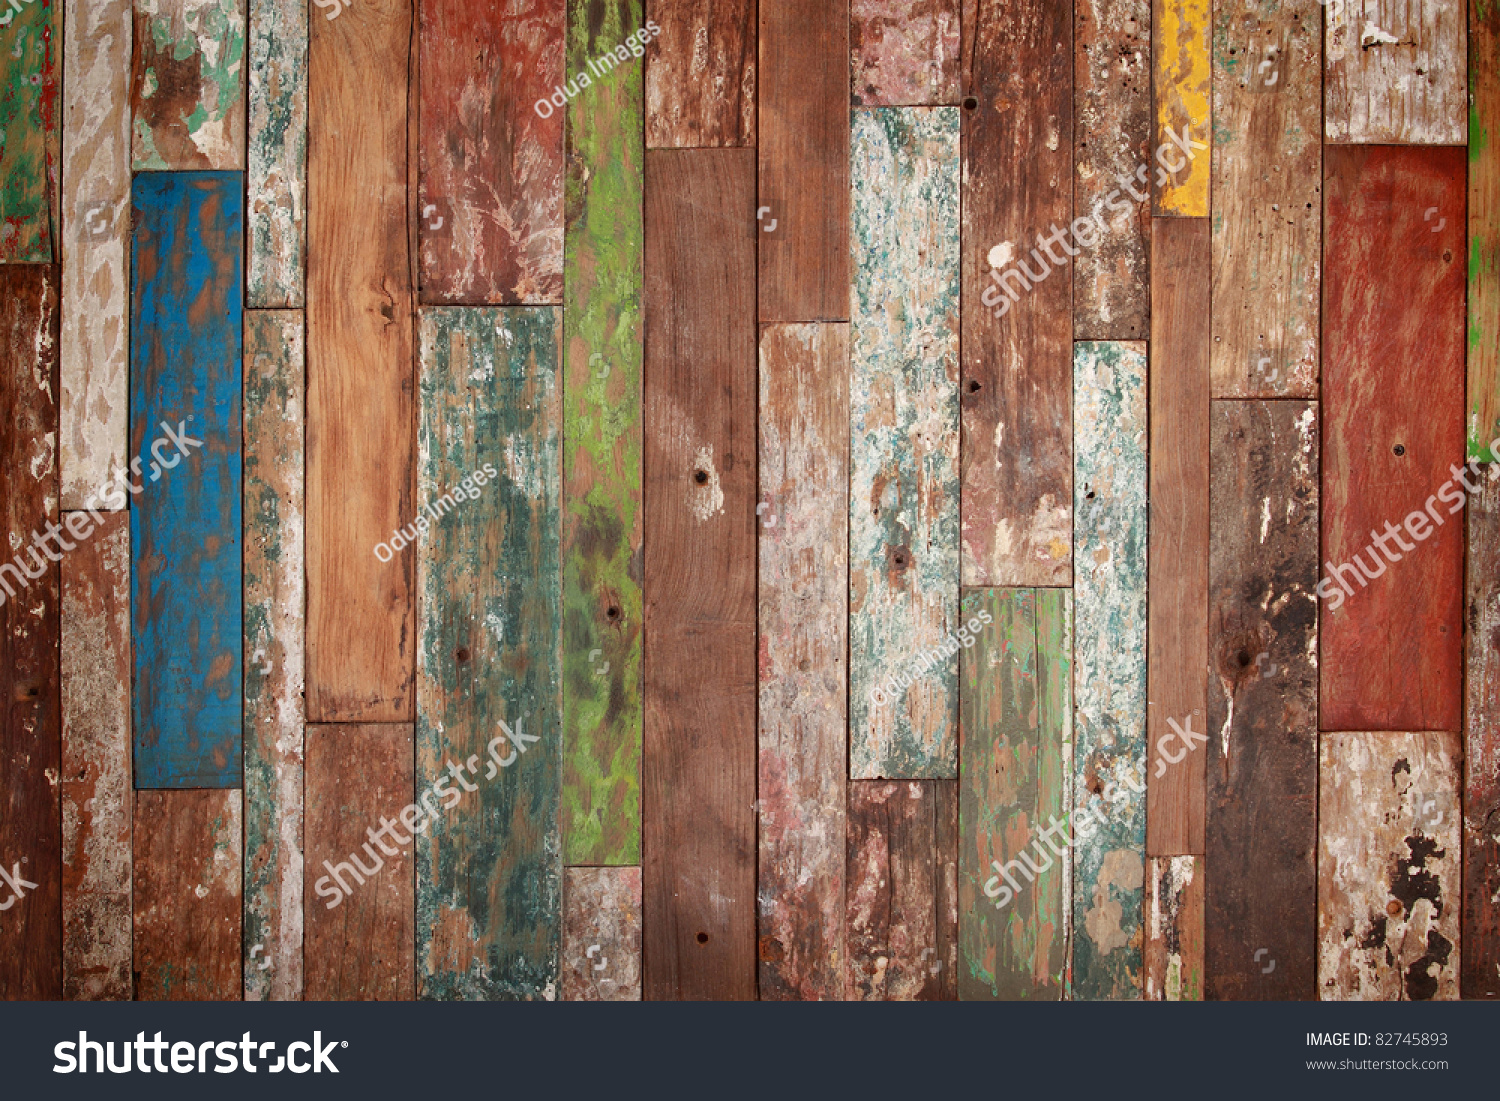 Pics photos wood texture background - Abstract Grunge Wood Texture Background